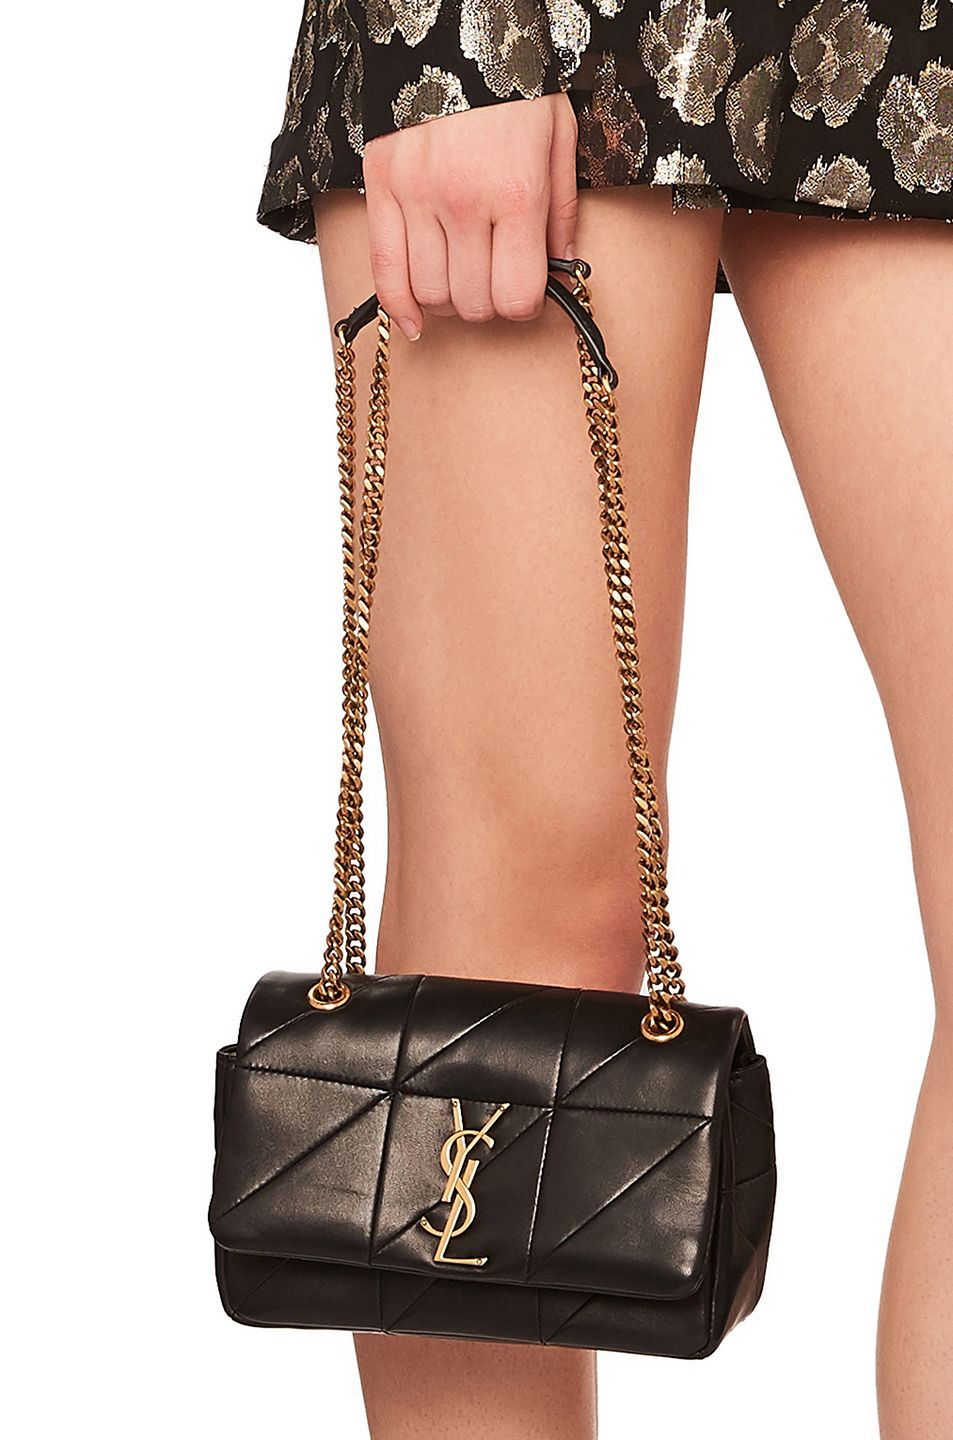 SAINT LAURENT Small Patchwork Leather Monogramme Chain Bag.  saintlaurent   bags  shoulder bags  leather  lining   d9c531375ebe1